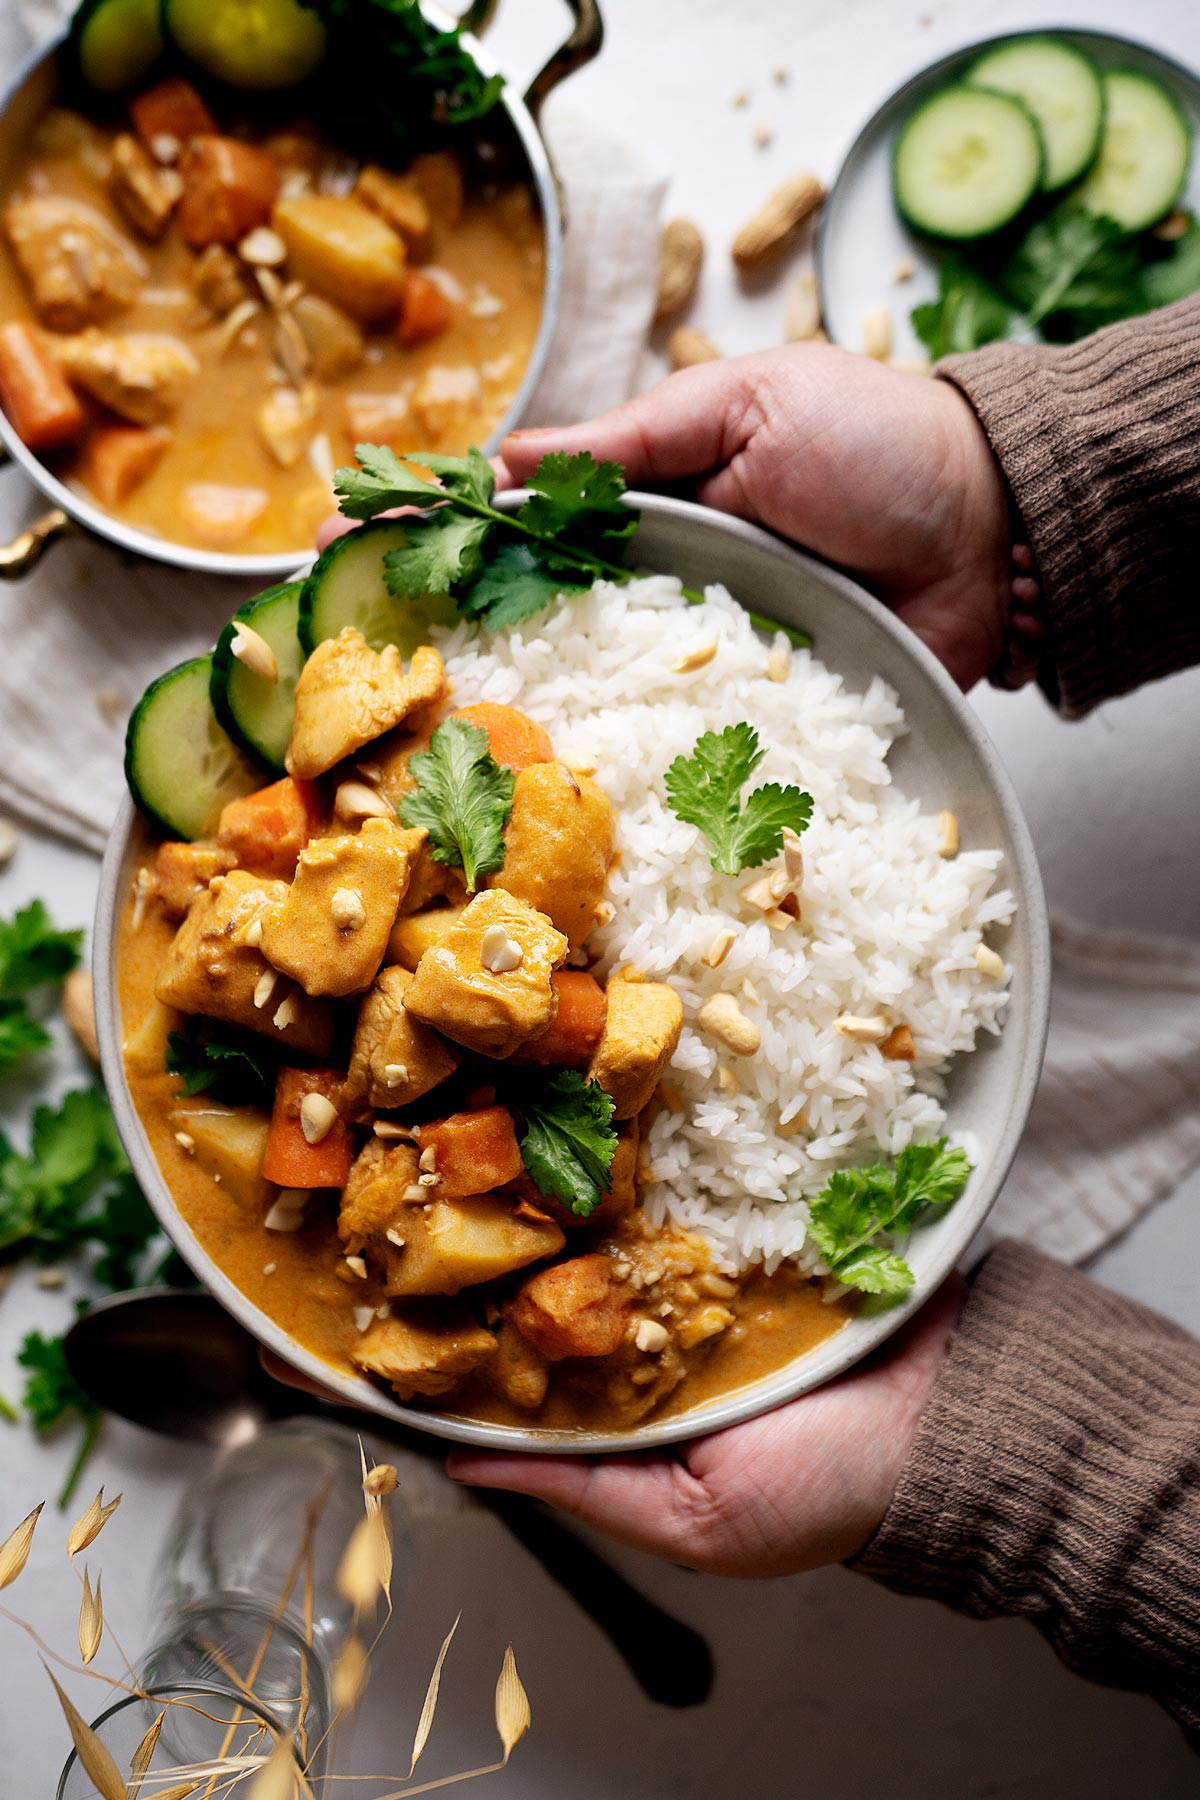 Holding a plate of quick chicken massaman curry